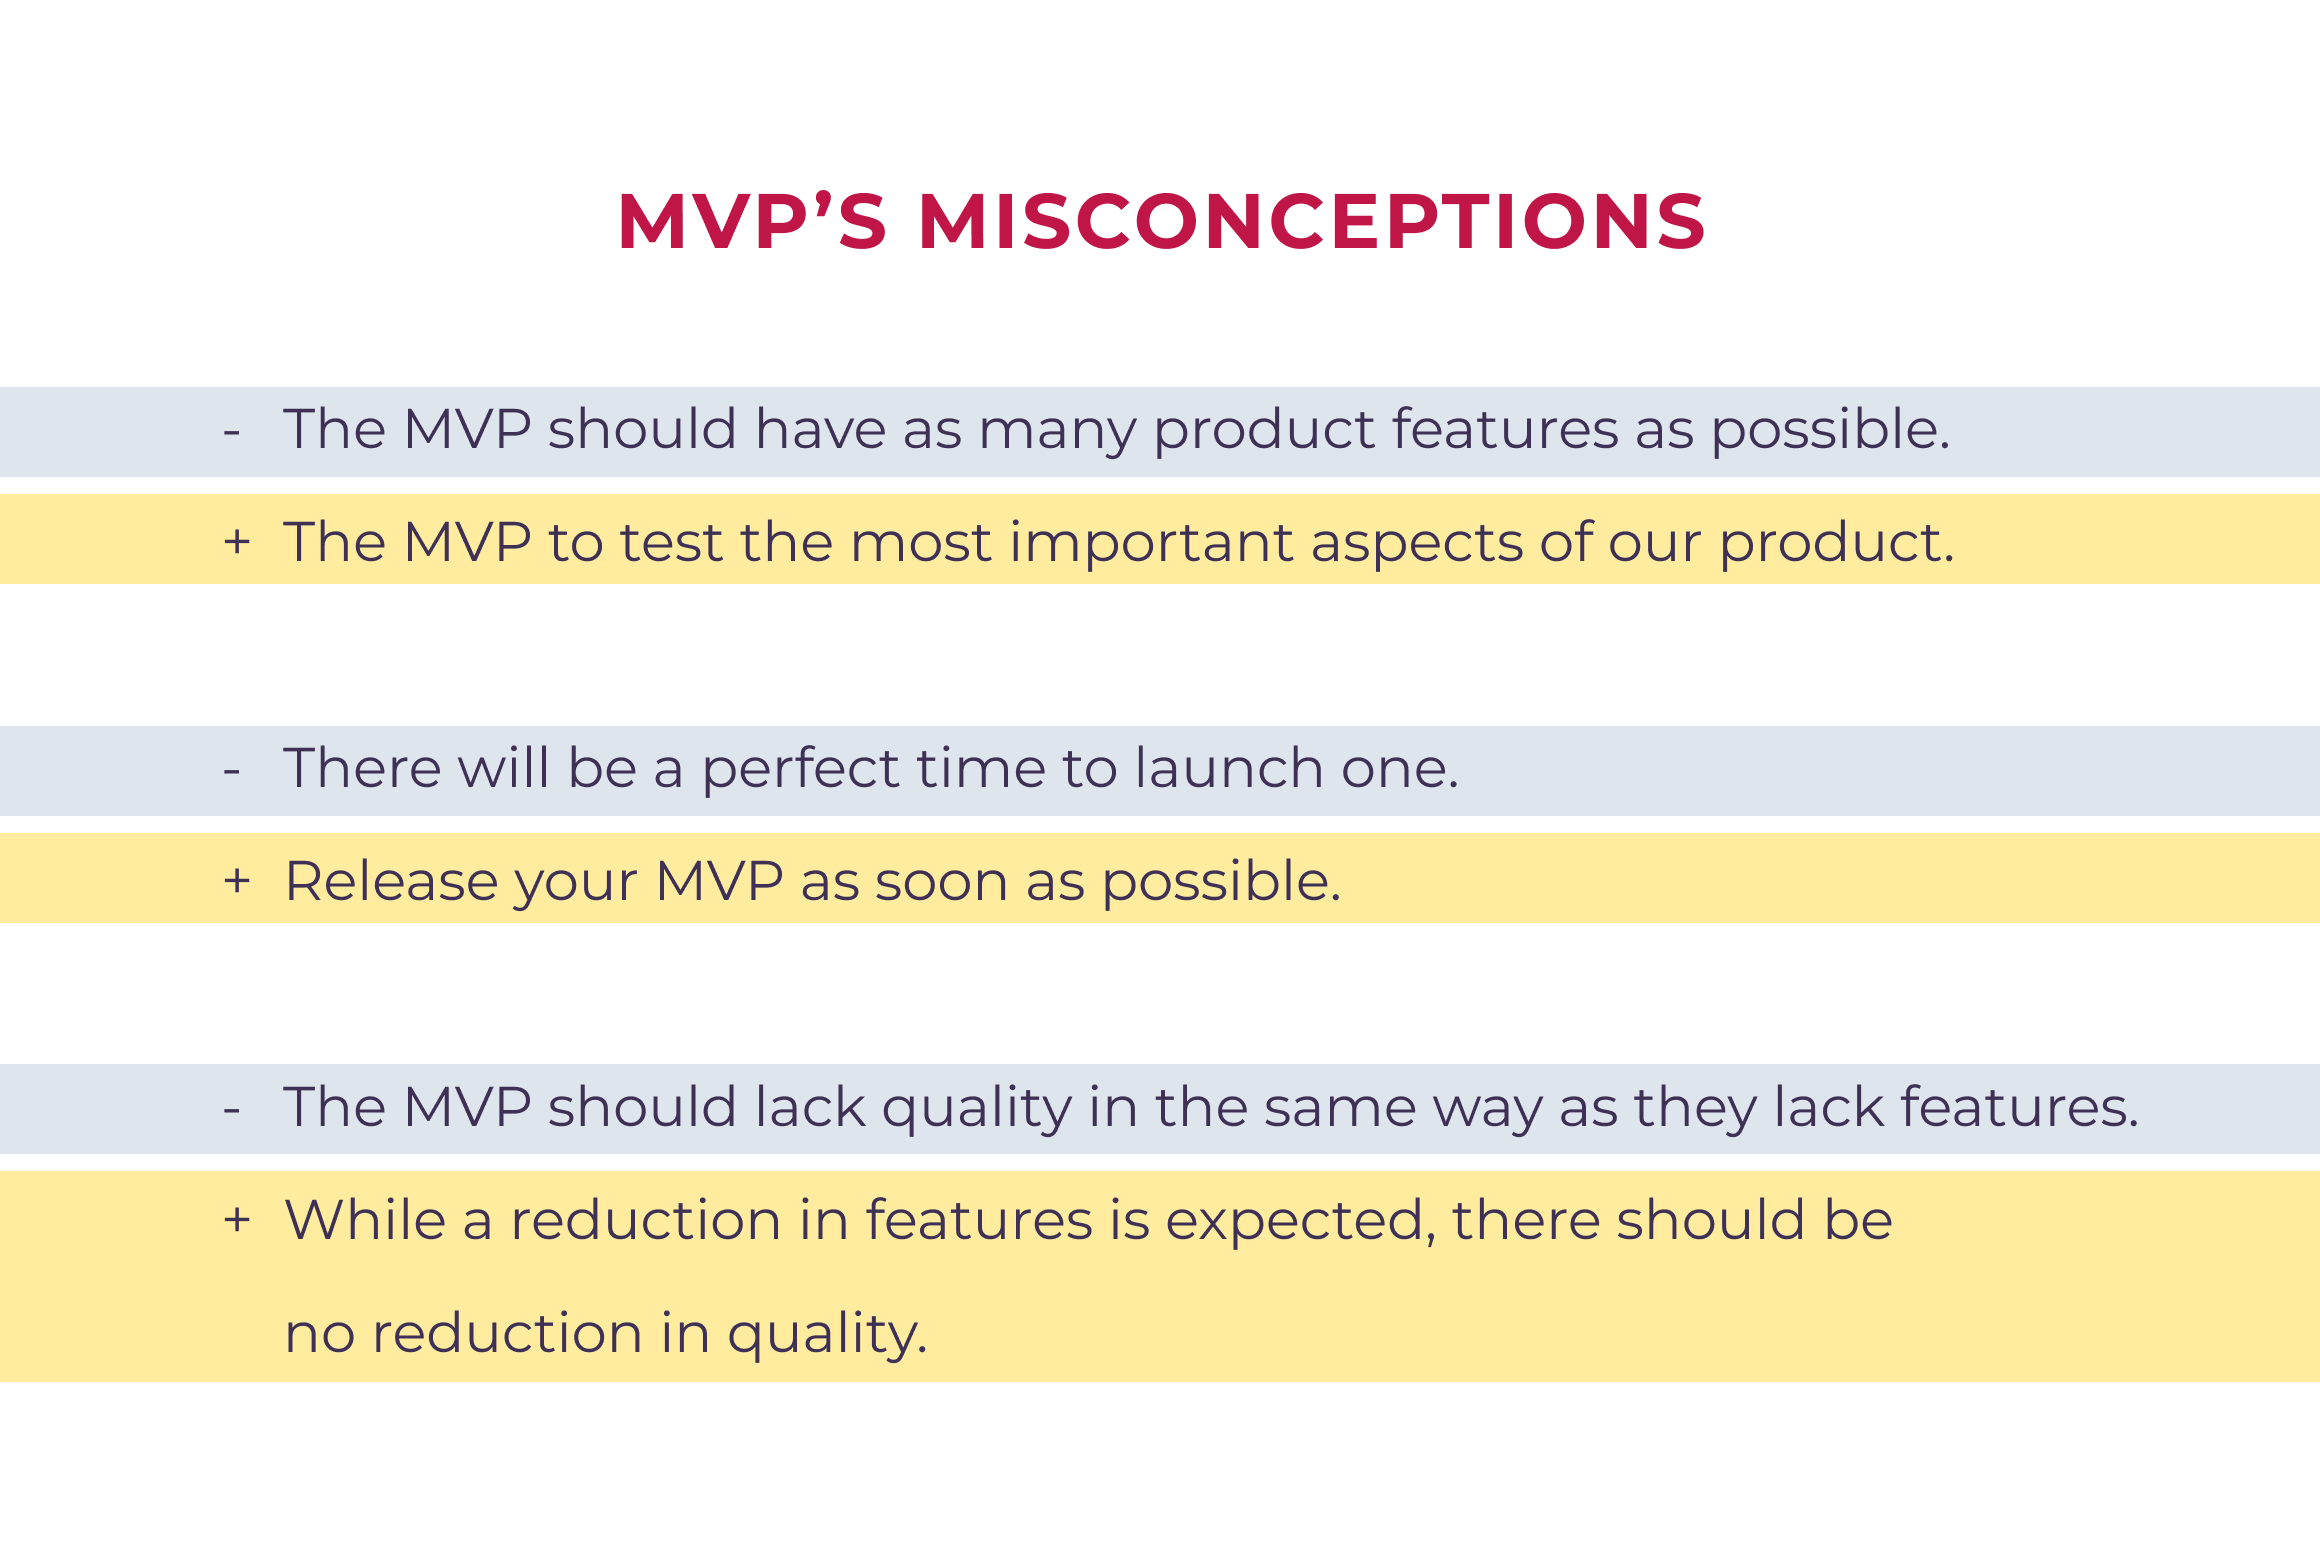 Misconceptions about MVPs